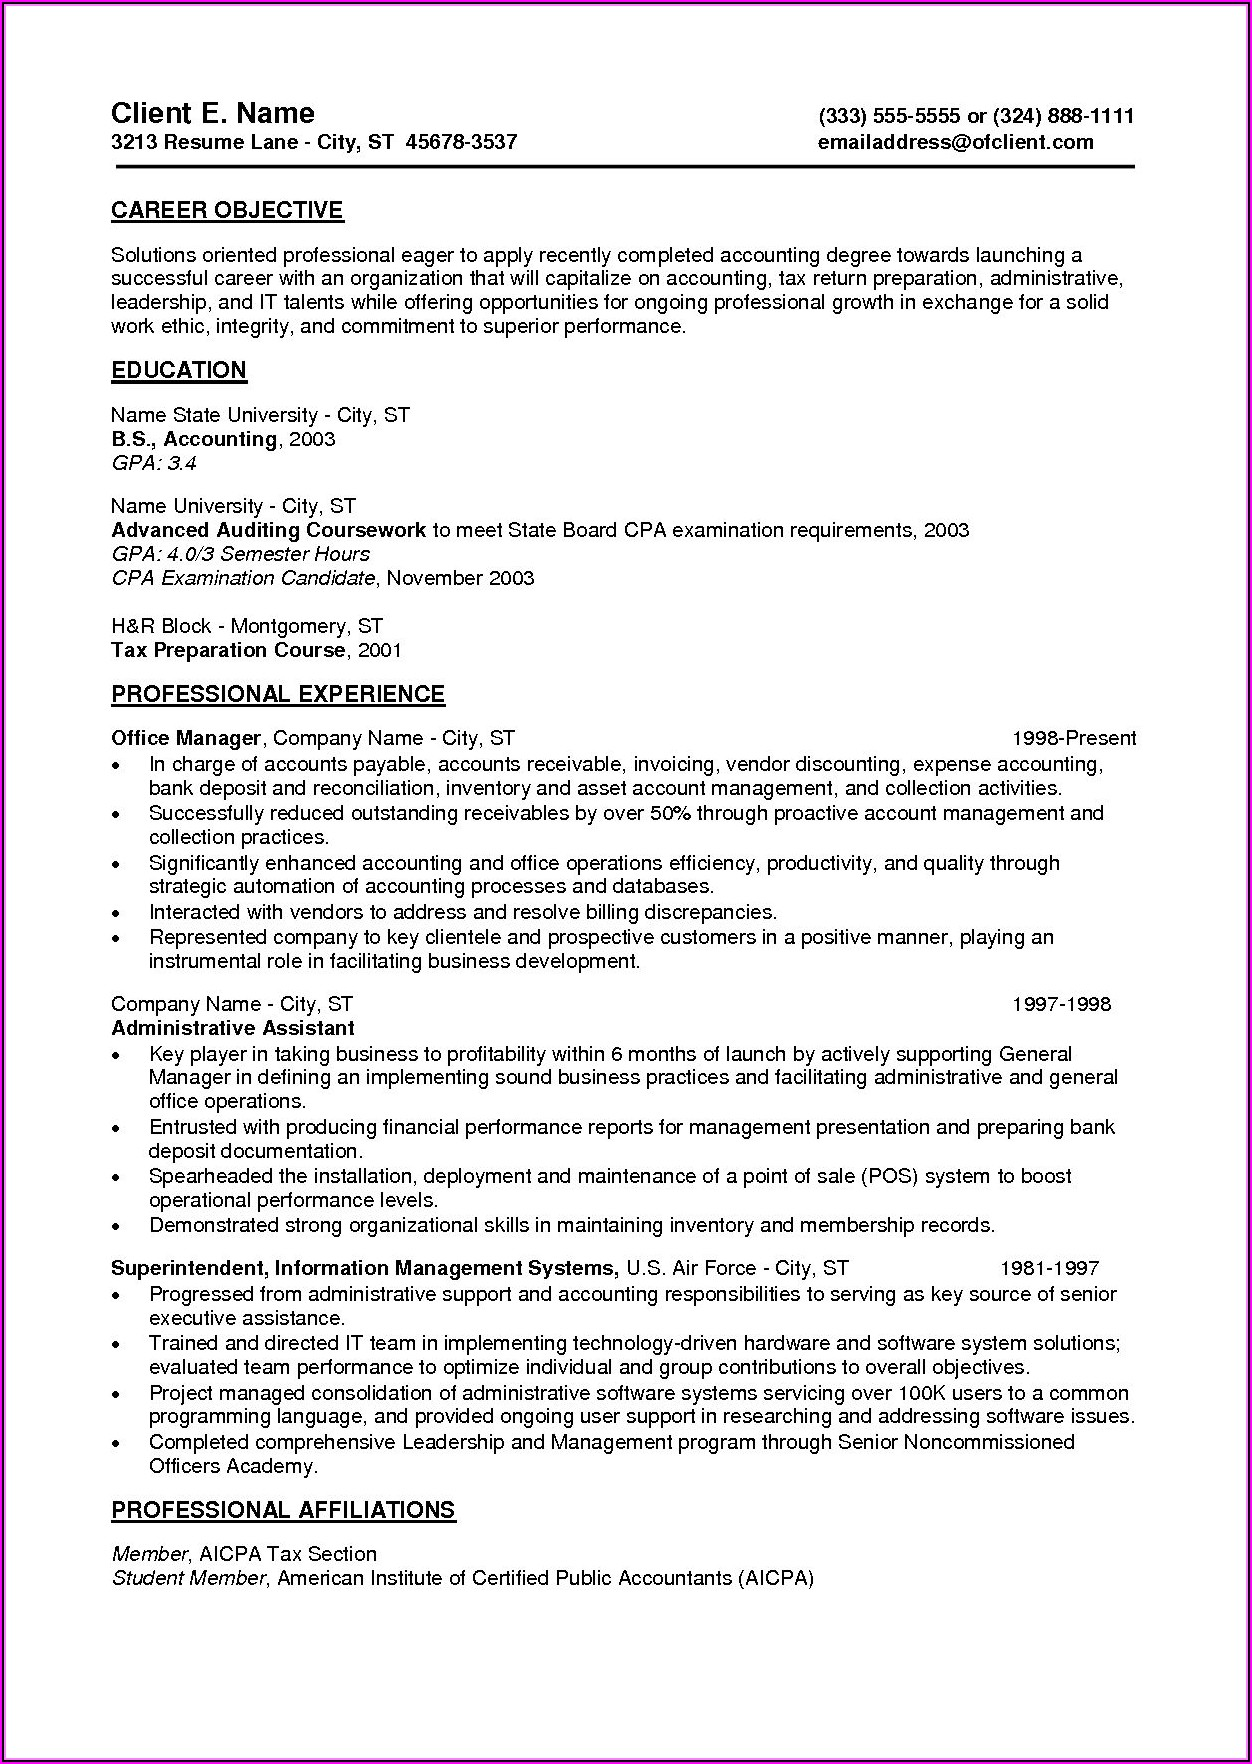 Free Resume Examples For Entry Level Jobs